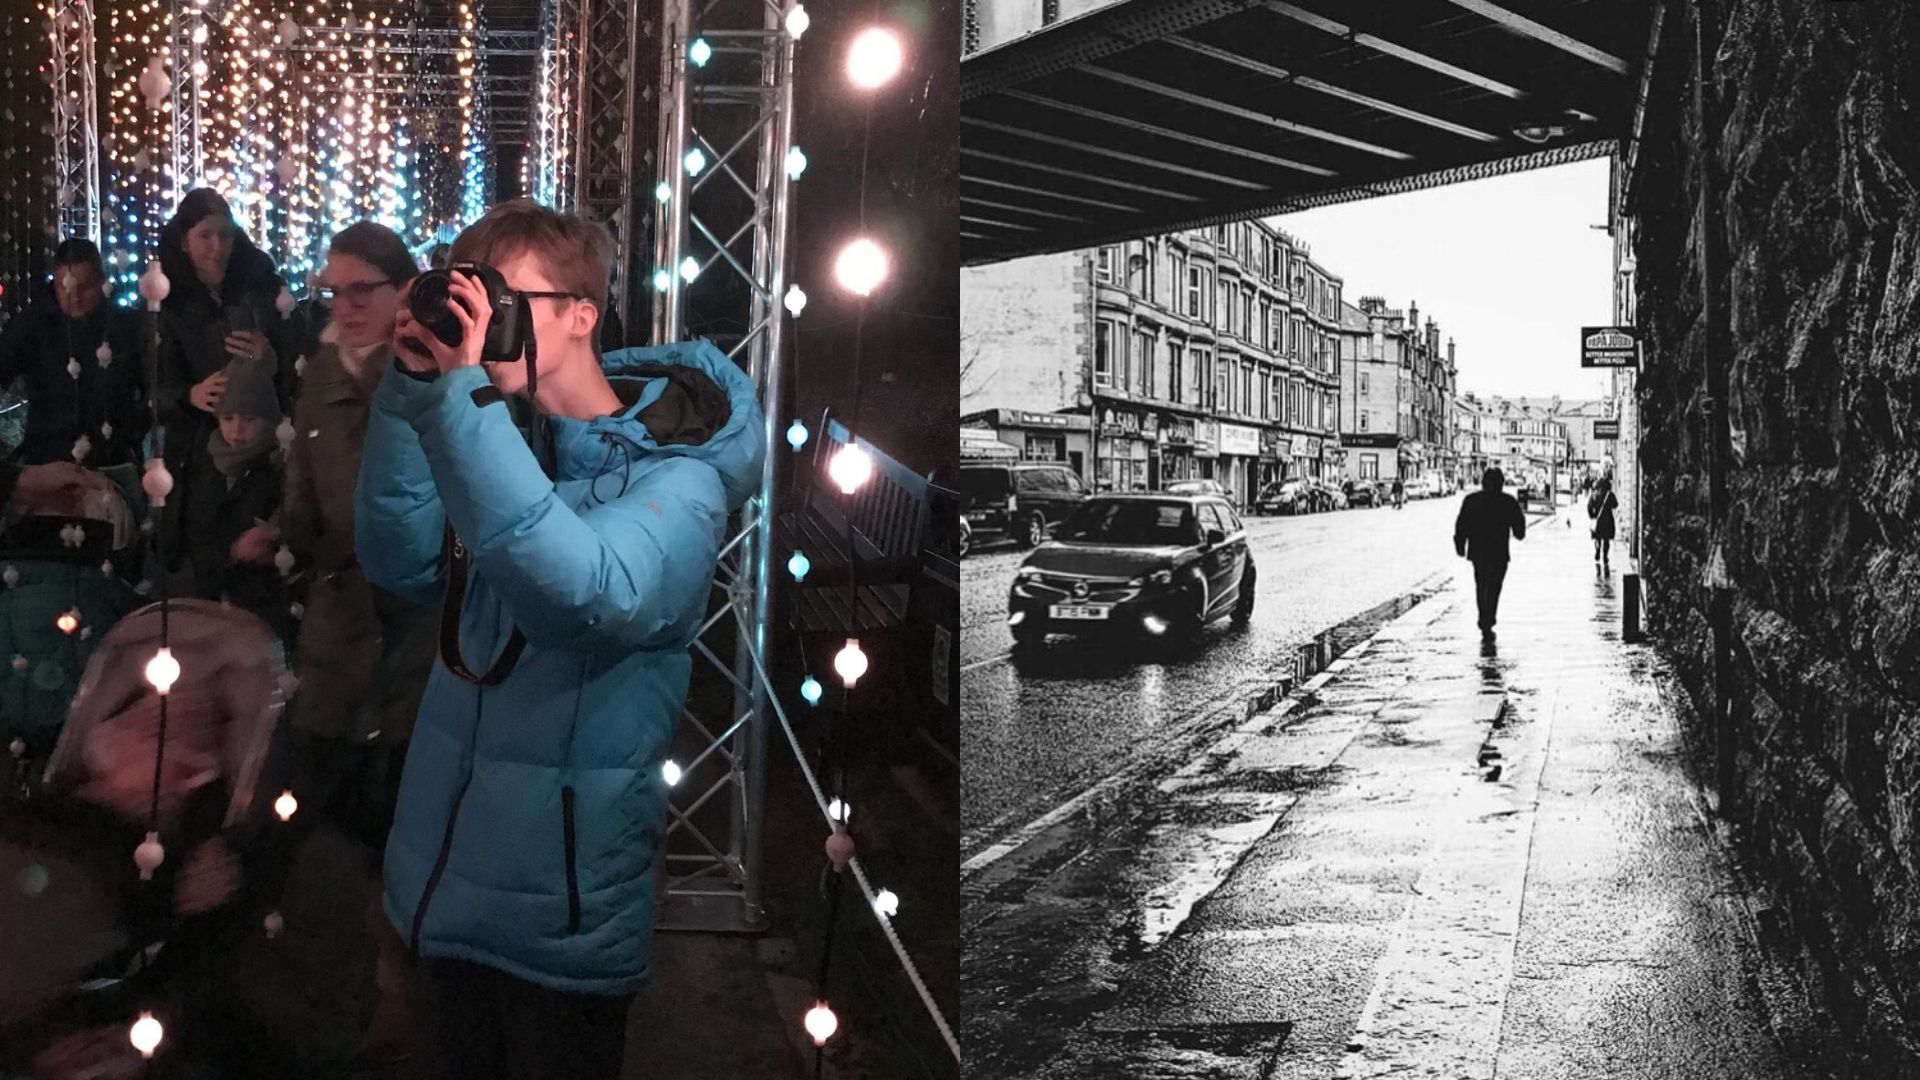 Left: Dylan, wearing a blue jacket, holding a camera up to take a photo. Behind him are several women and child as well as some lights and what appears to be scaffolding. Right: a black and white image Dylan took of a street under a bridge. We can see some cars and a man walking under the bridge.